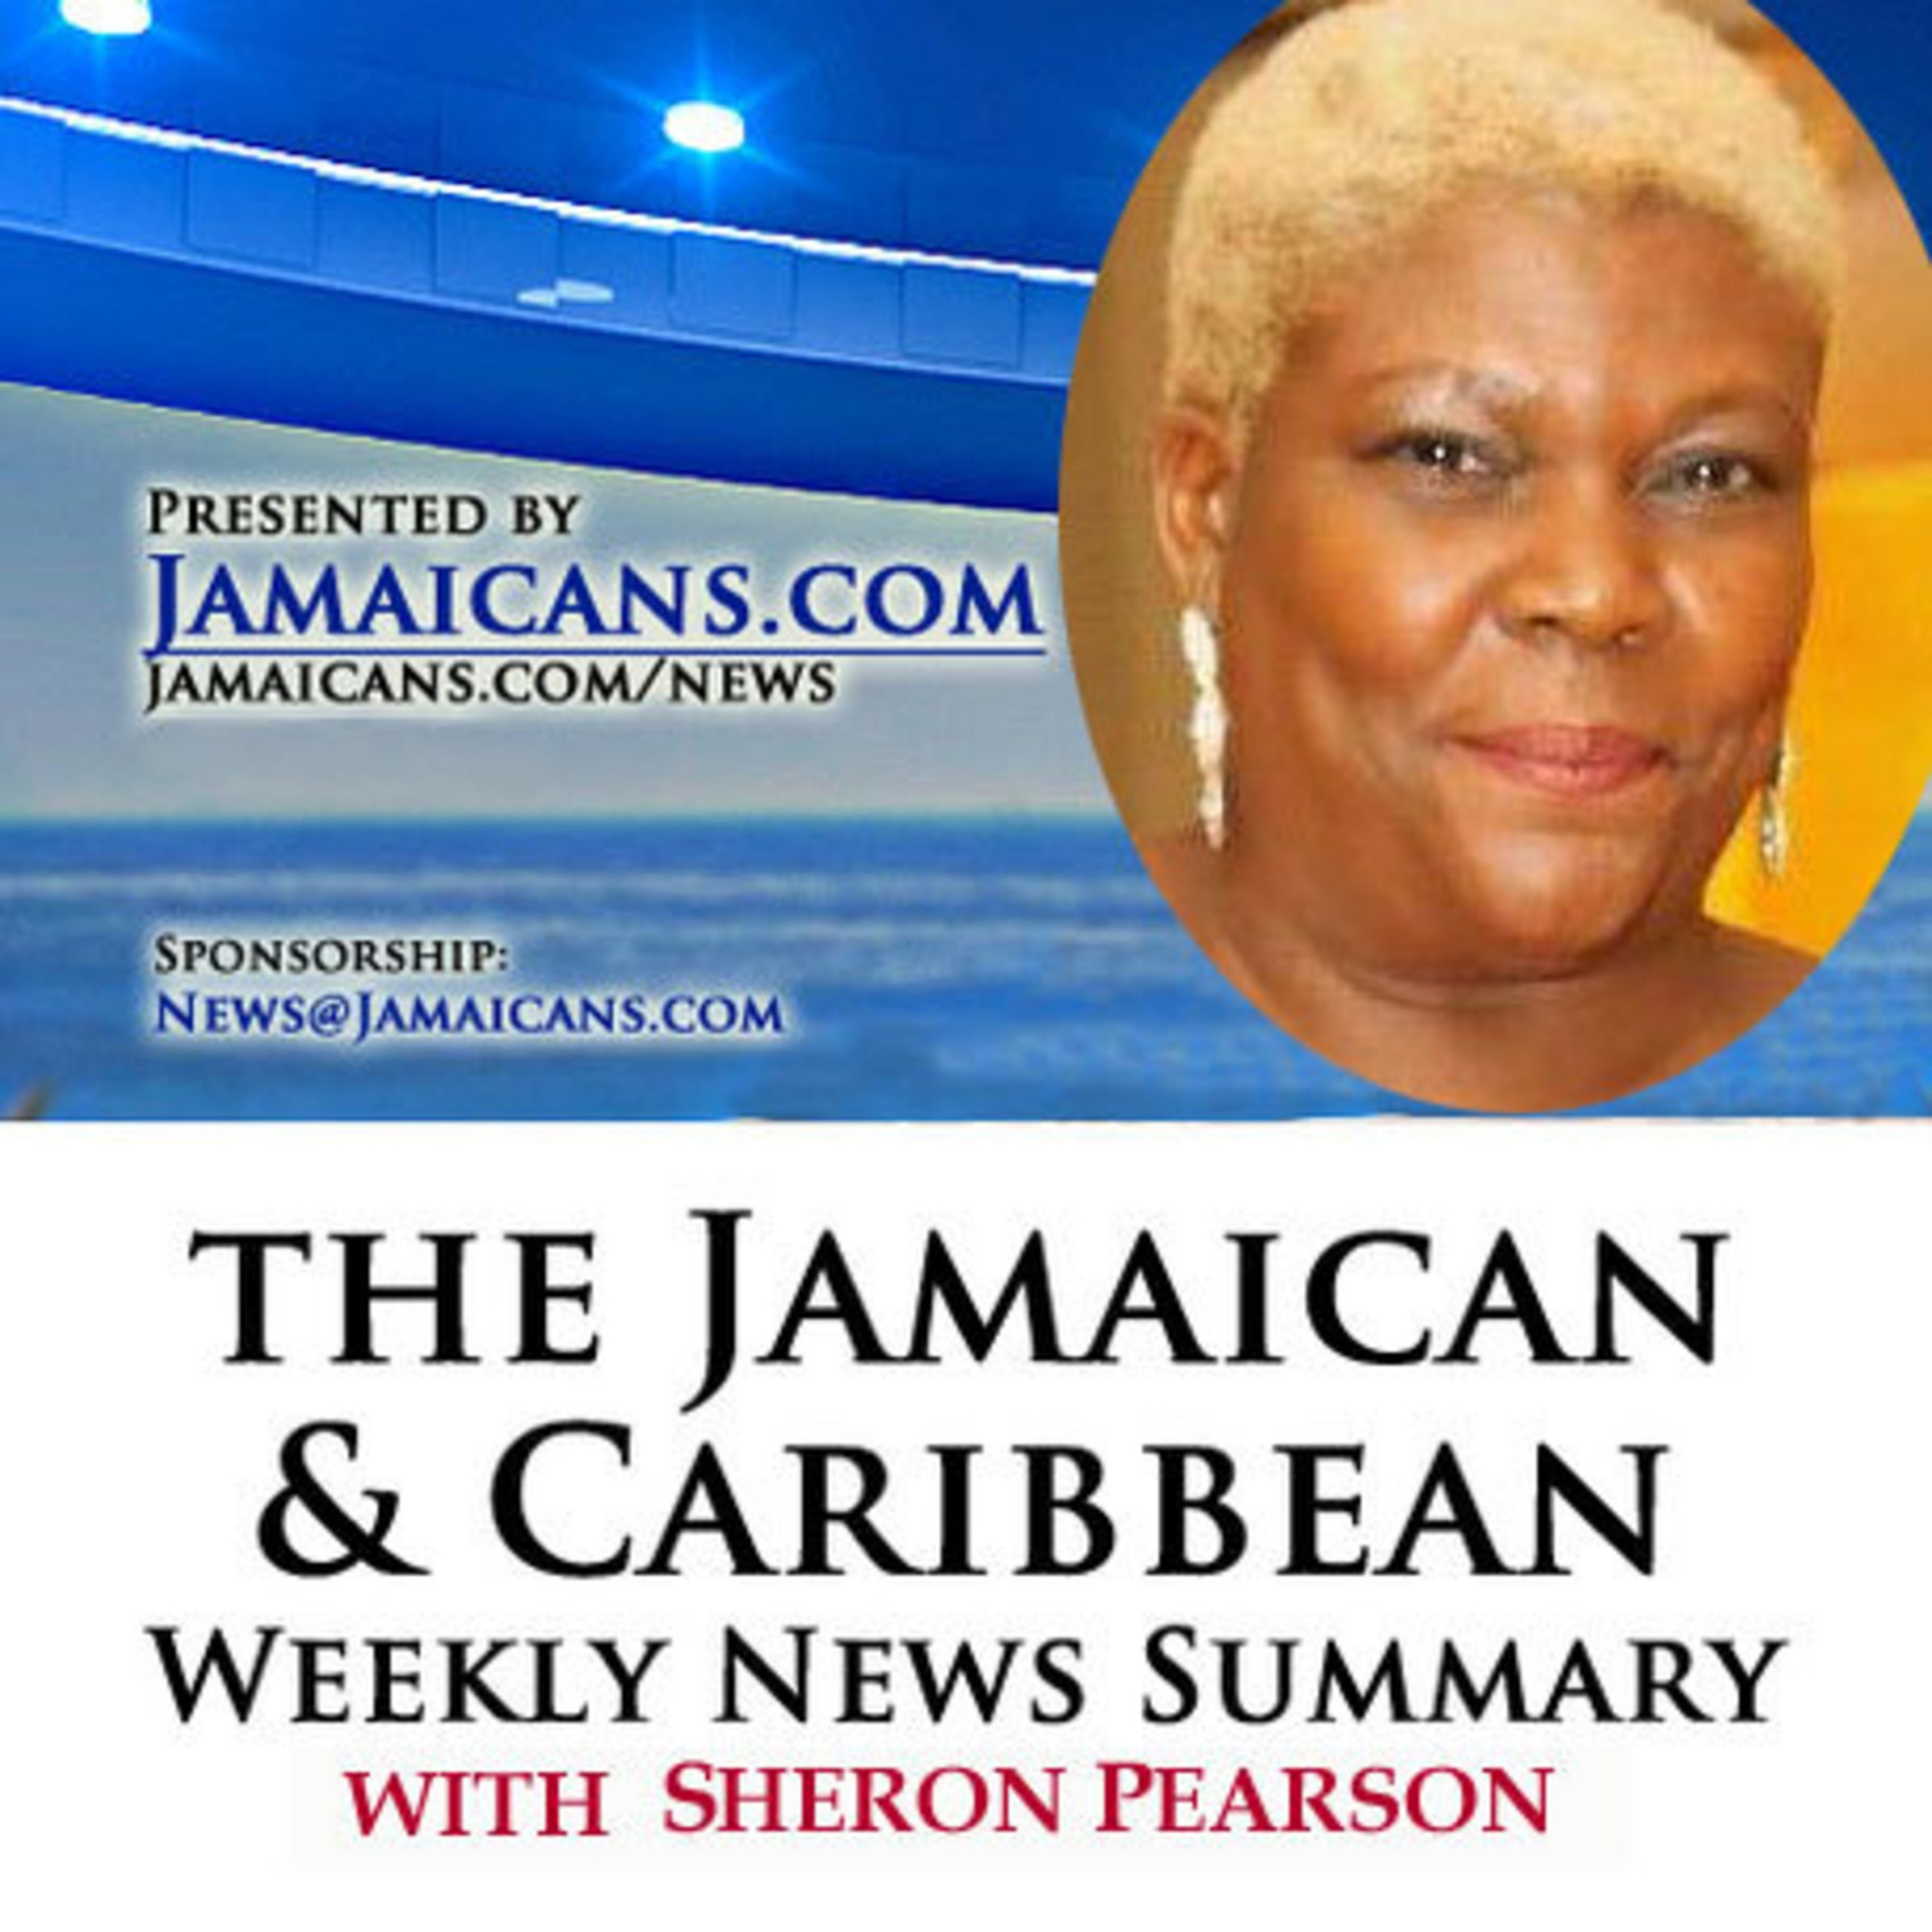 Listen to the Podcast of The Jamaica & Caribbean Weekly News Summary for the week ending July 17, 2020